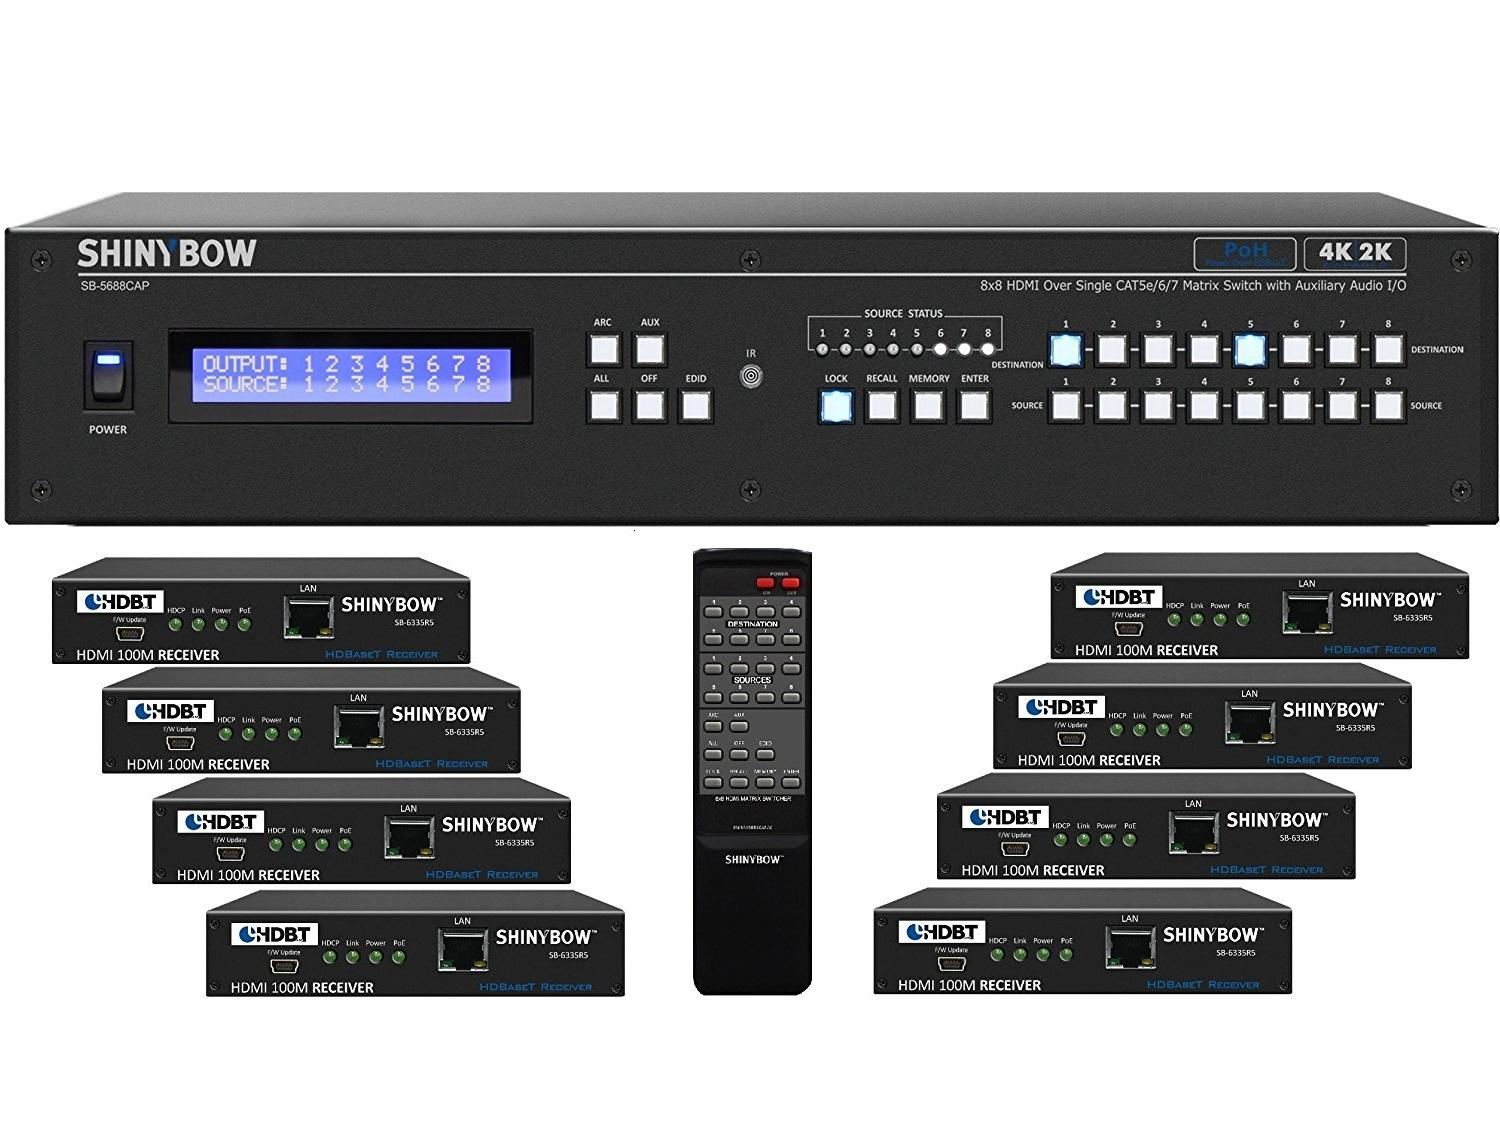 Shinybow SB-5688CAP-8x35R5-Kit 8x8 4K UHD HDBaseT PoH Matrix Switcher Kit/1 x SB-5688CAP Switch/8 x SB-6335R5 Receivers